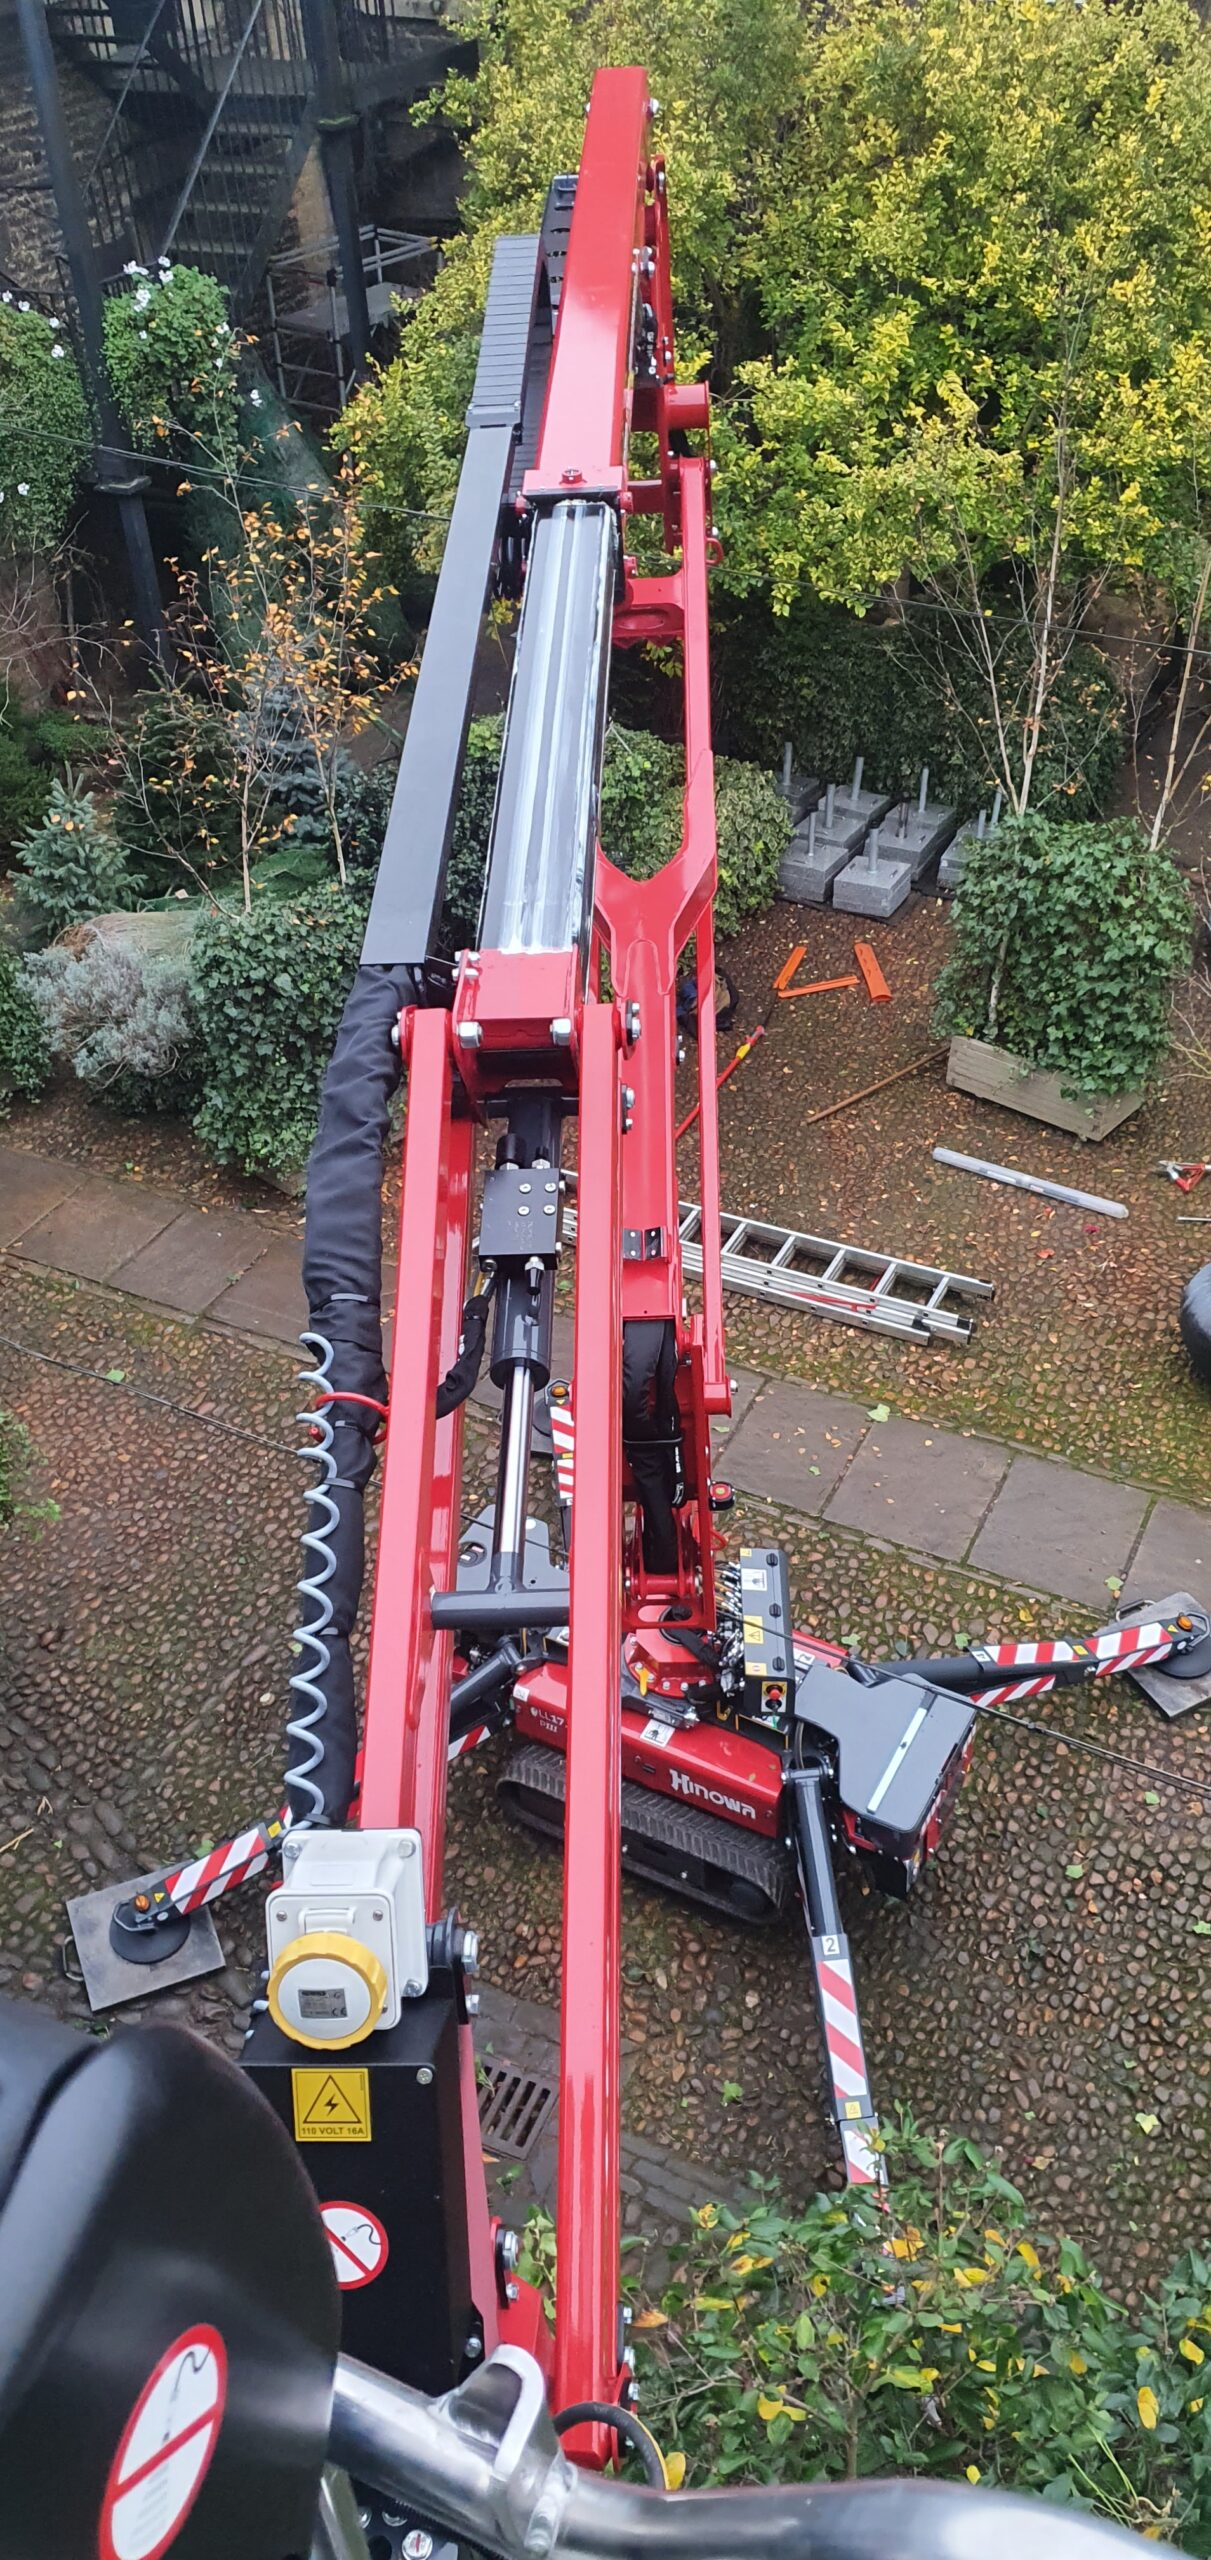 Warren Access provide 17m Hinowa 17.75 spider lift to trim ivy at The George of Stamford